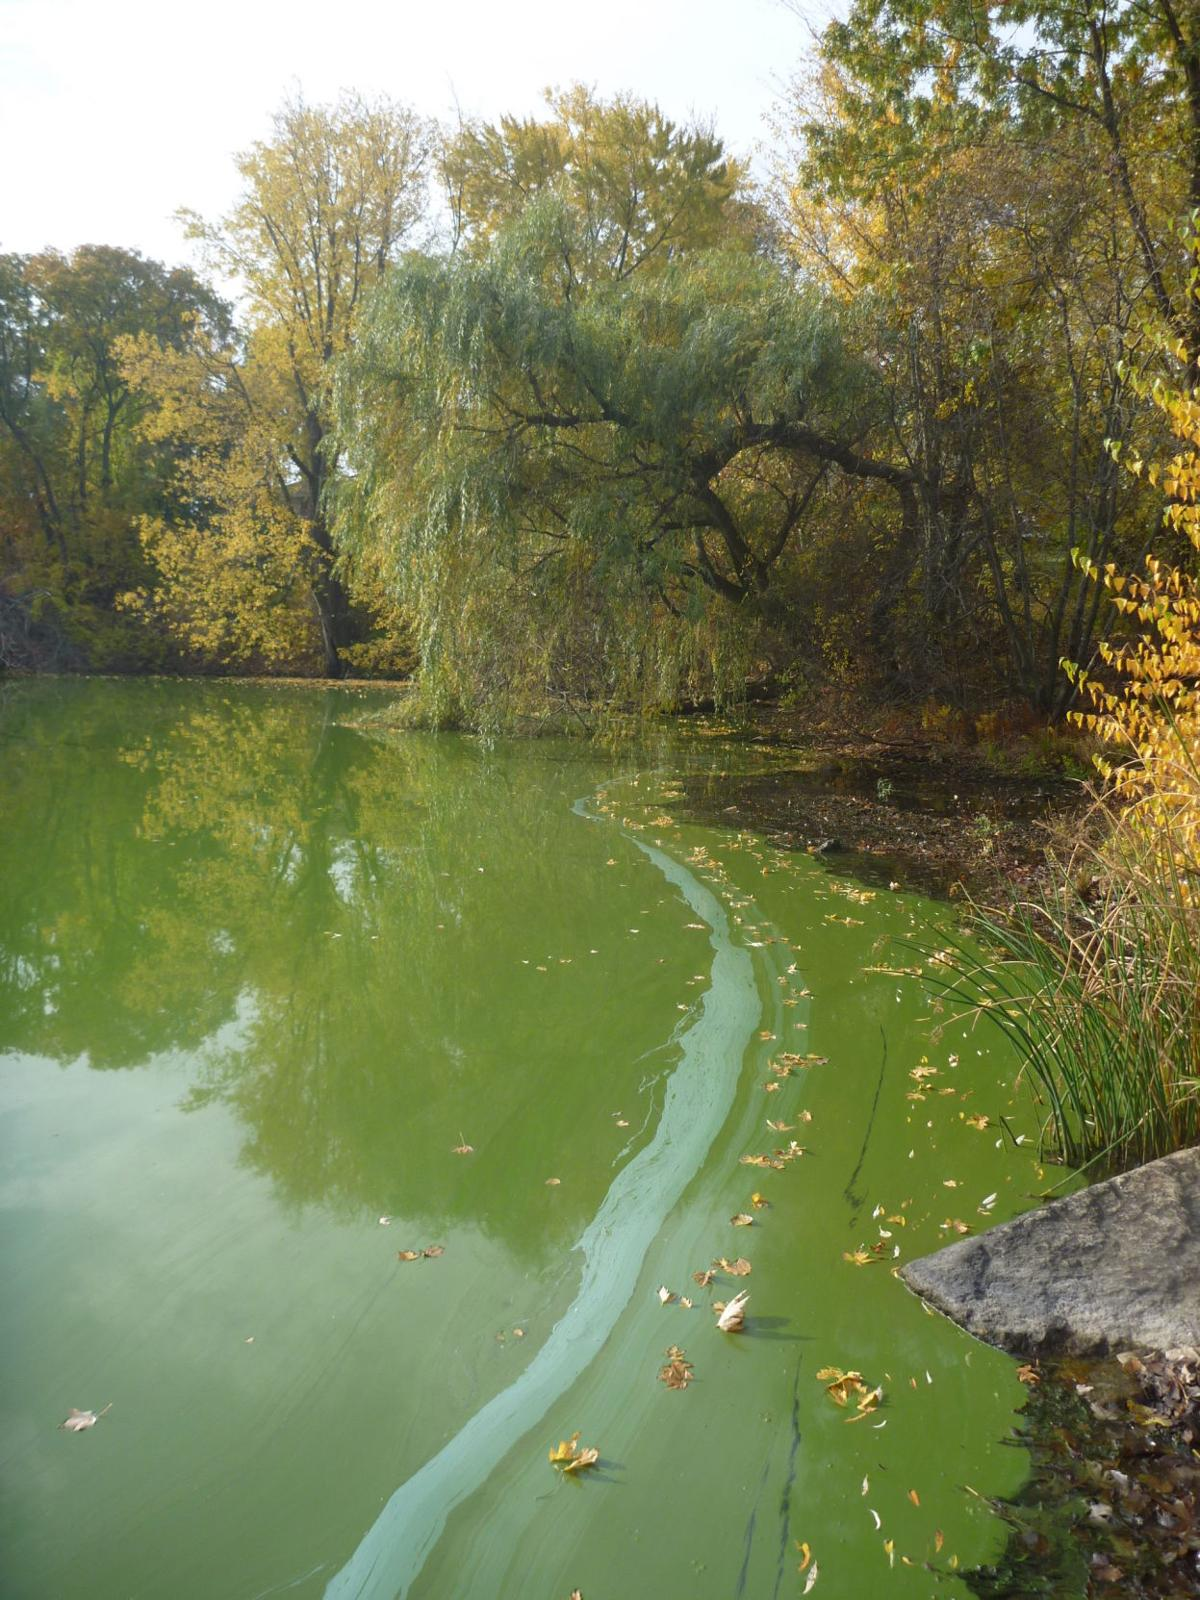 062629 REG algae in ponds submitted by RIDEM (2).JPG